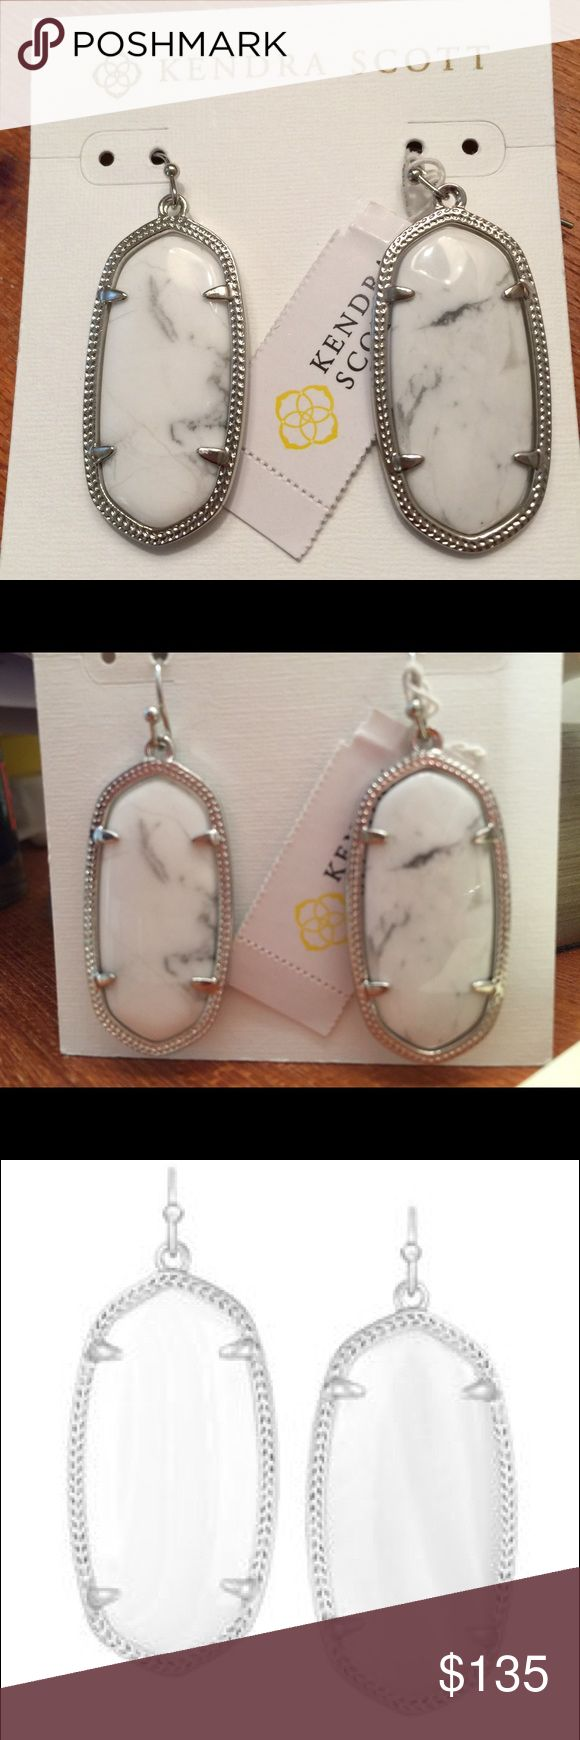 NWT Kendra Scott Howlite Earrings Elle Super RARE! These are brand new with tags and impossible to find! Kendra Scott Elle earrings are the most popular size and can comfortably be worn all day long! The Howlite stone is the hardest to locate and these are especially beautiful! Set in rhodium (silver) and are perfectly pristine as they've never been worn😊 I also have the Alex in Howlite listed. Kendra Scott Jewelry Earrings